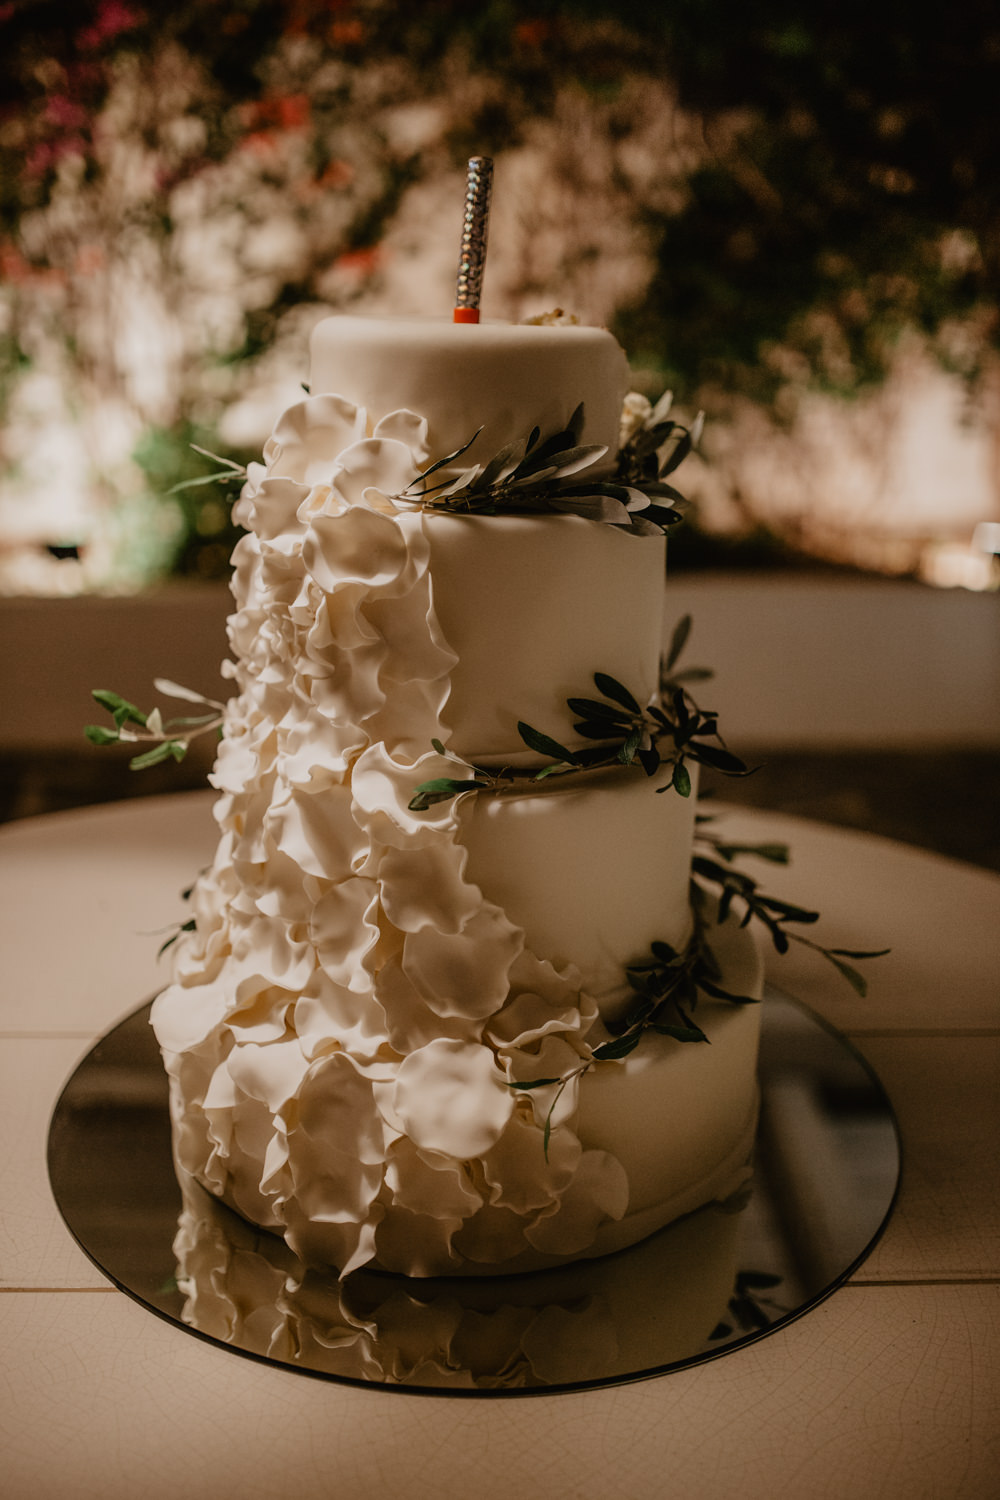 Cake White Tiered Olive Leaves Sparkler Icing Greece Destination Wedding Elena Popa Photography